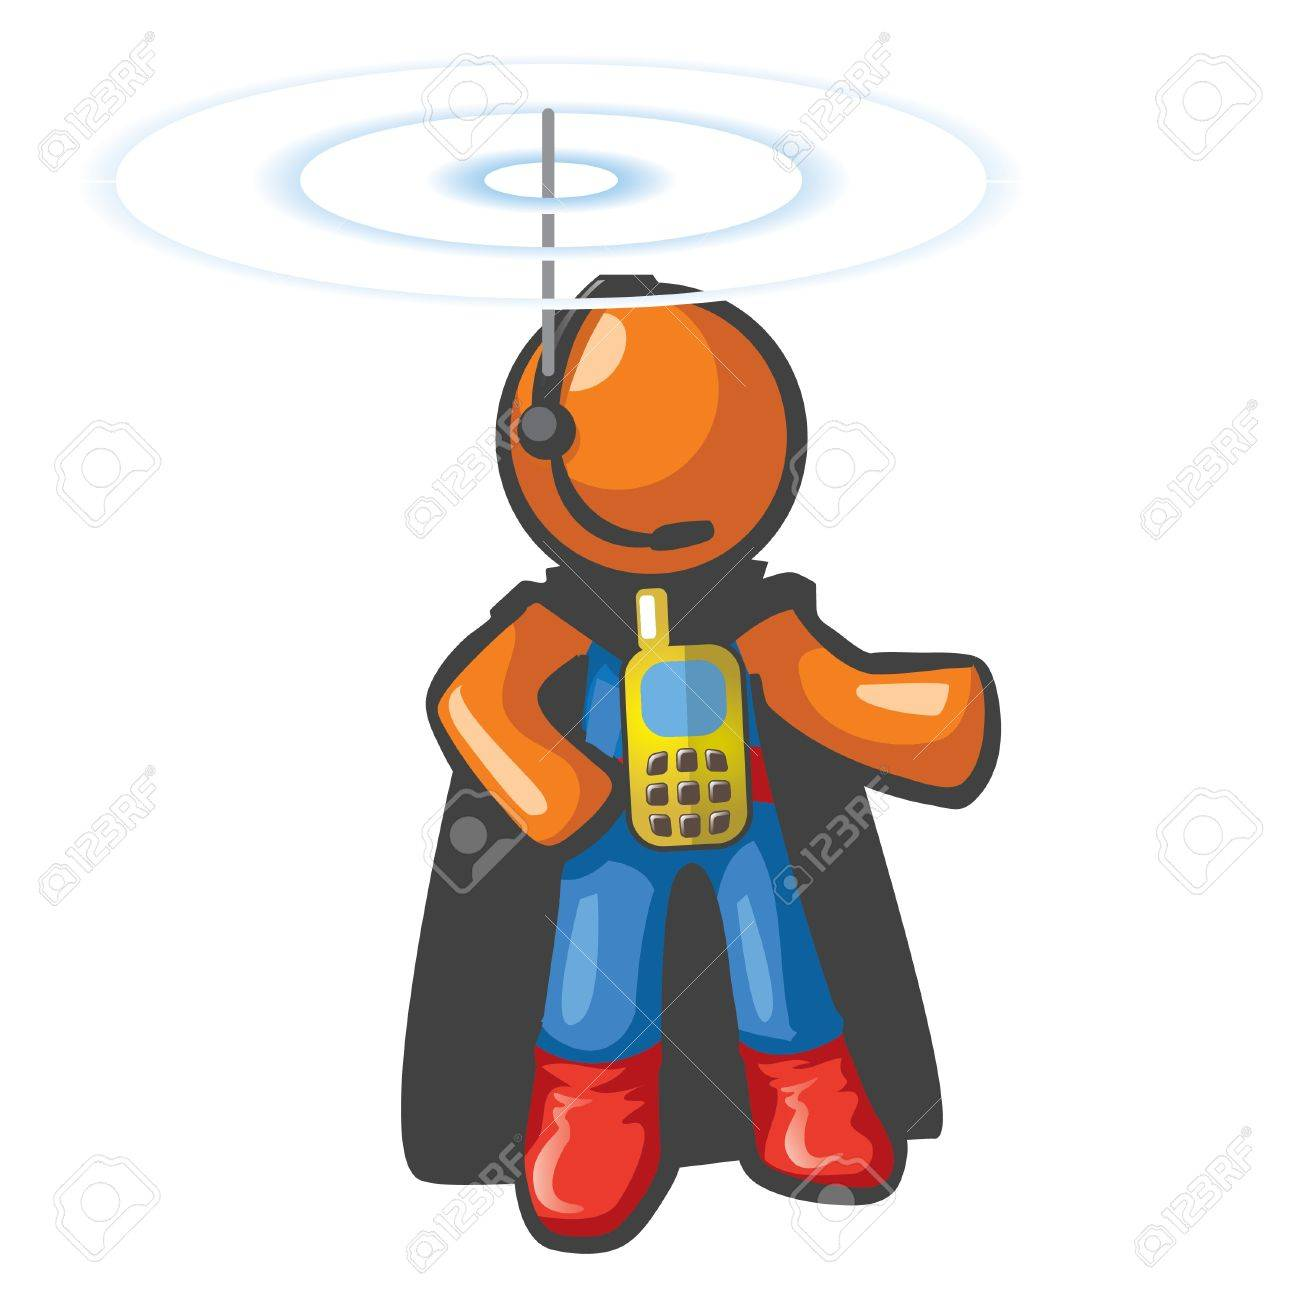 Orange Man communications hero, with phone on his chest and antennae on his head. He's in touch and ready to save the day from a safe distance. Stock Vector - 12812125